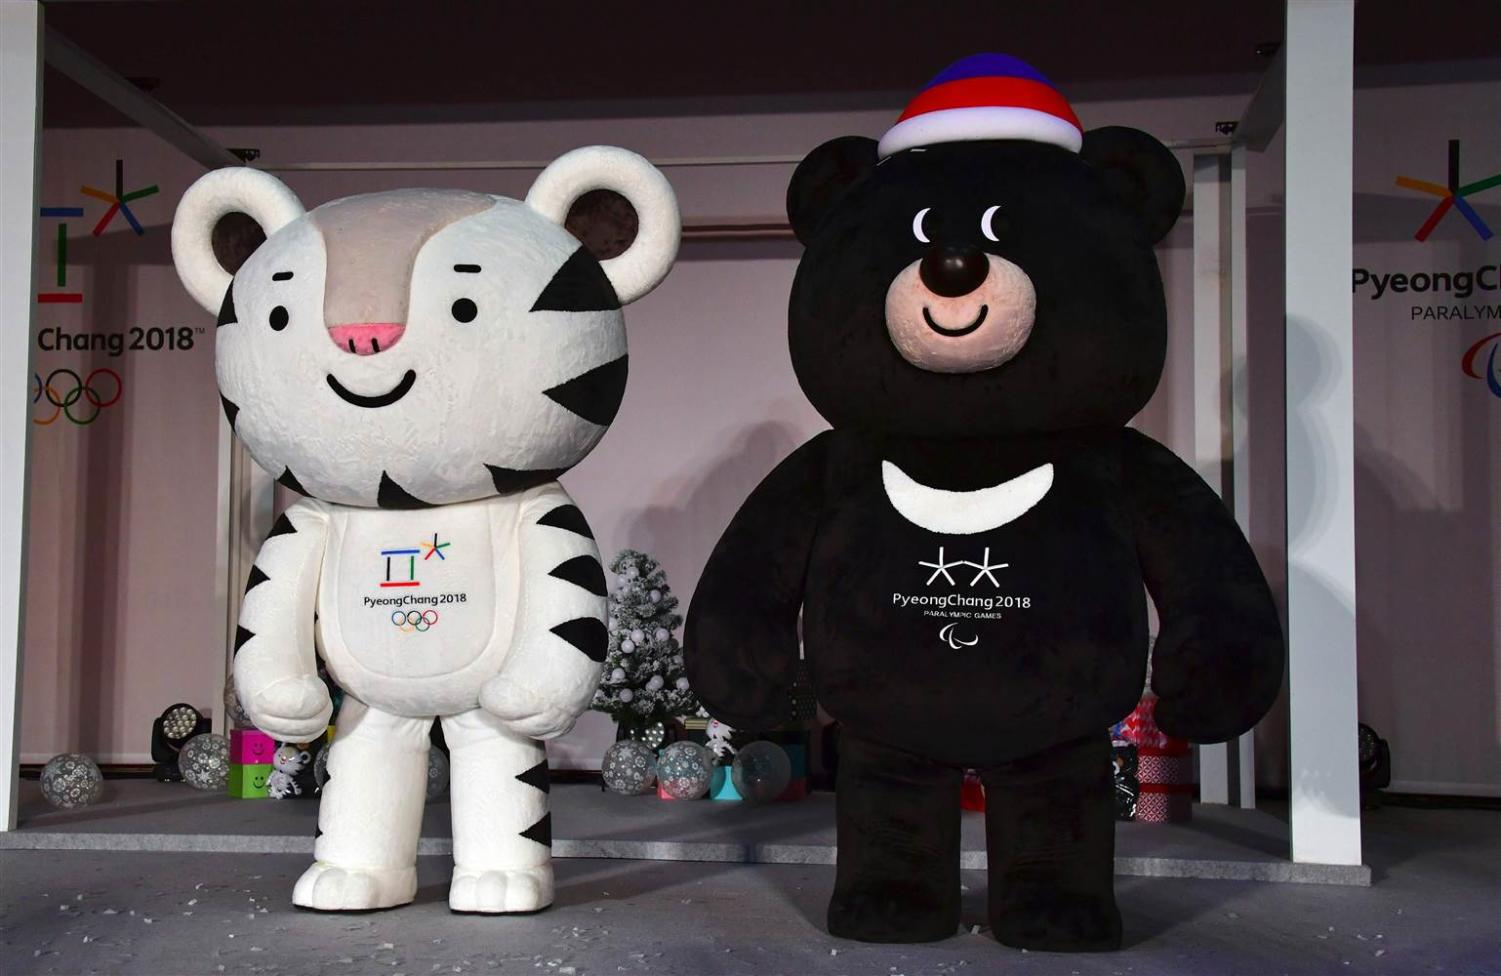 The 2018 Winter Olympics hosted in Pyeongchang, South Korea will begin on February 8th and will last until February 25th.